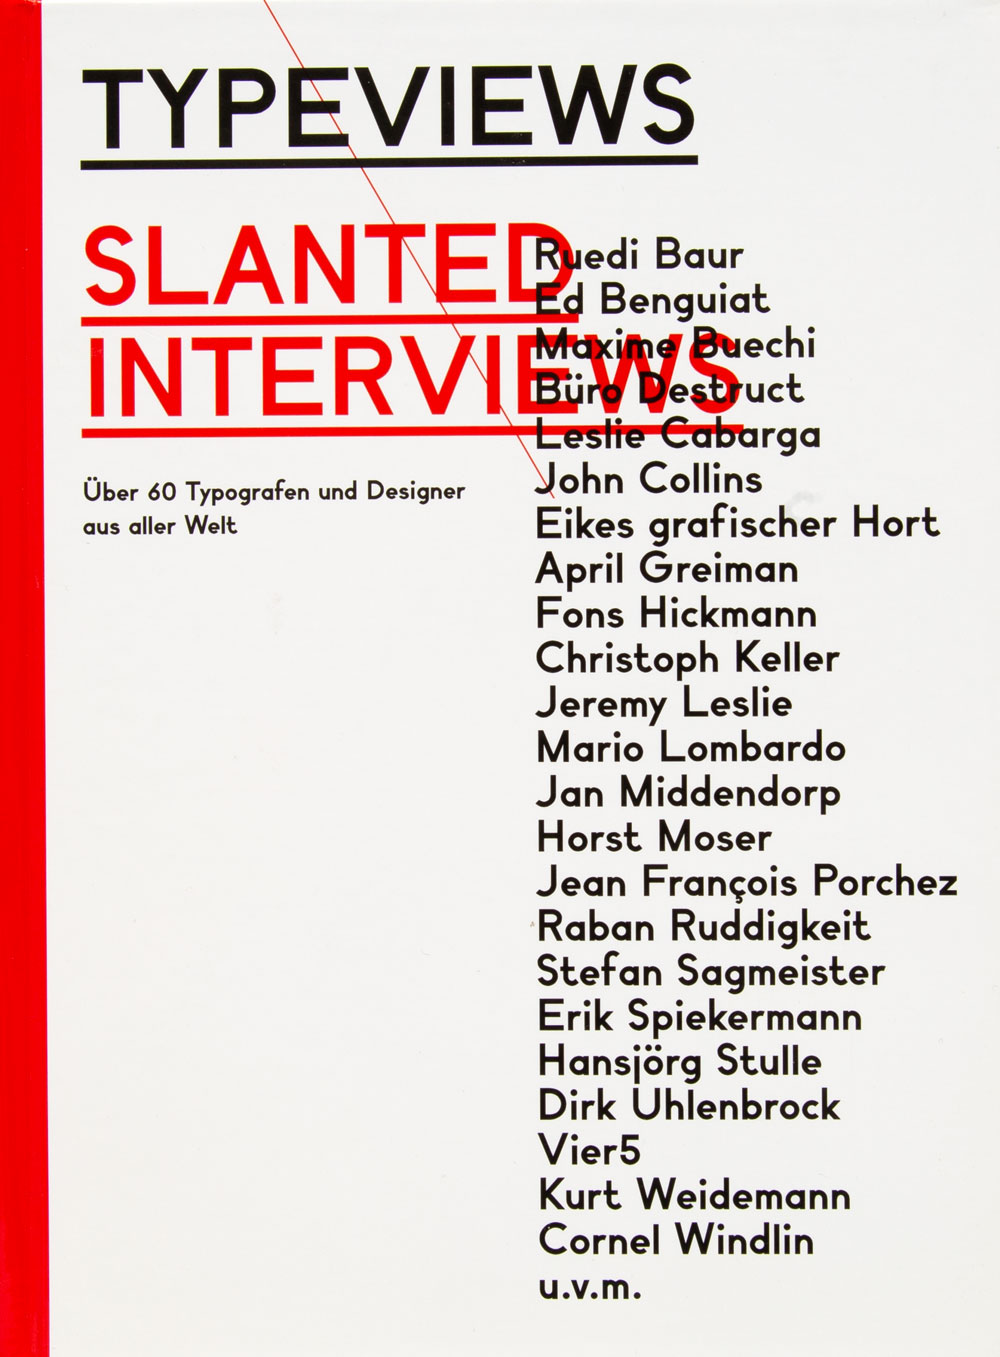 Typeviews Slanted Interviews